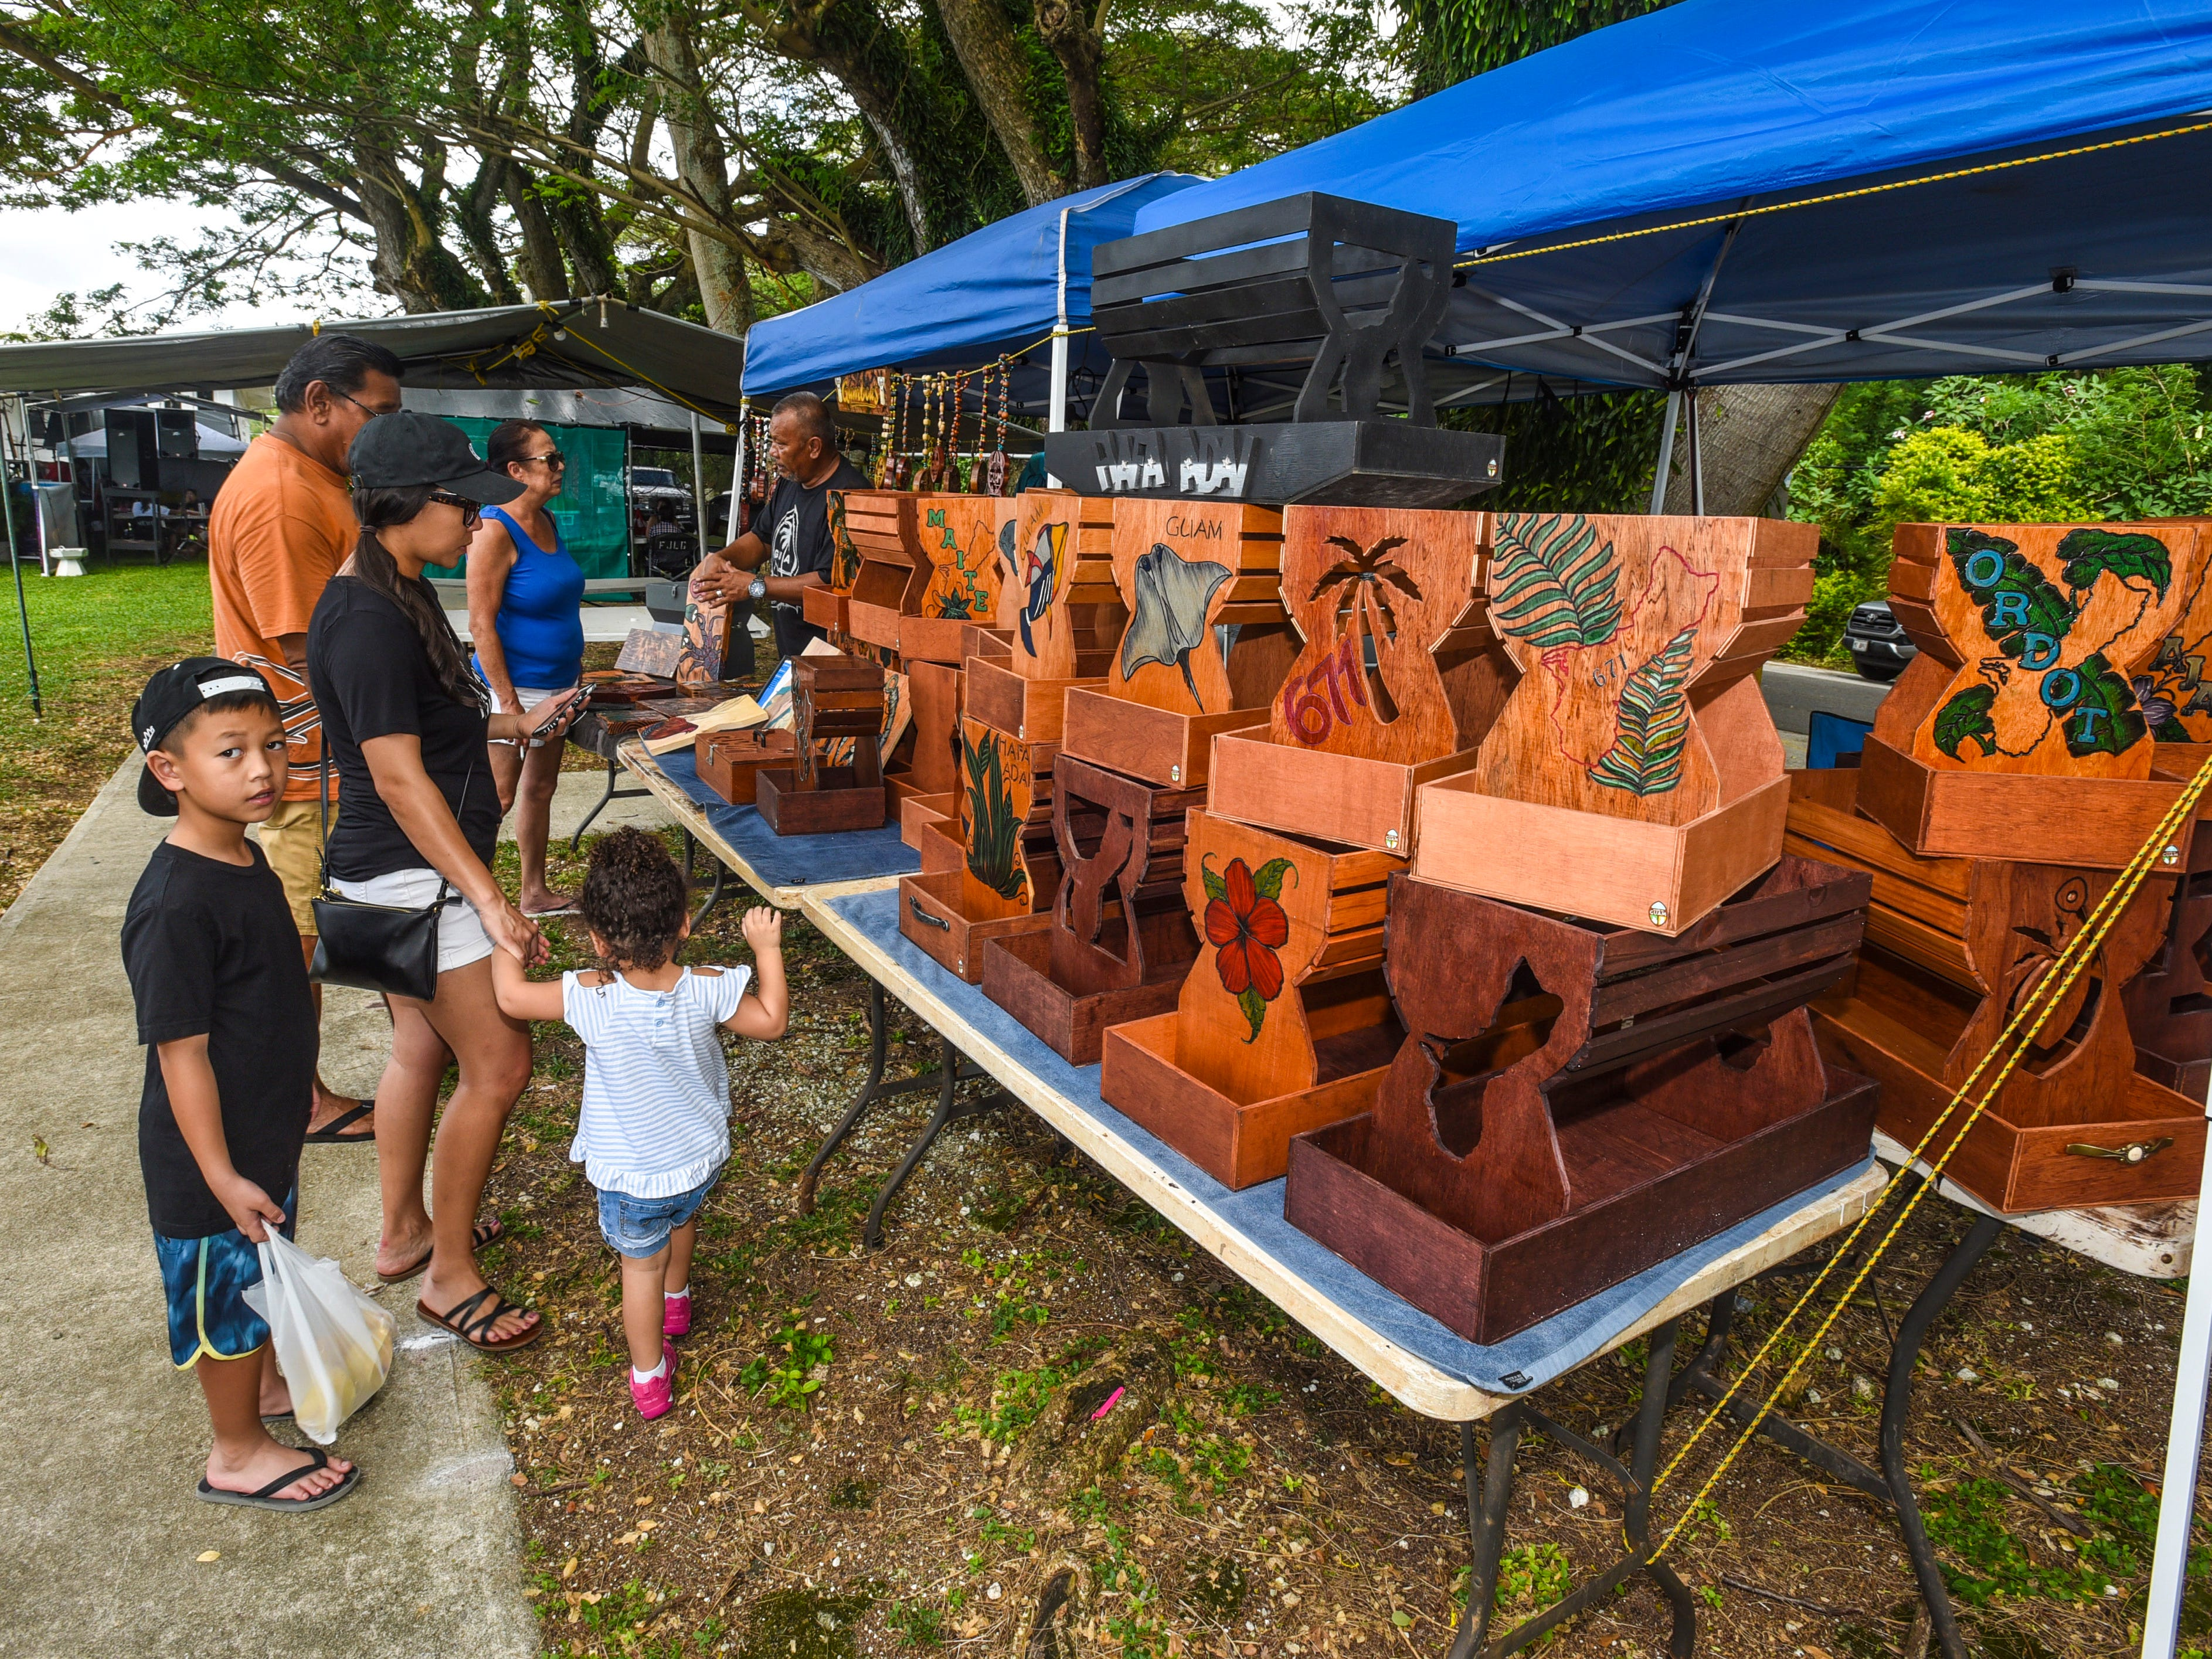 Festival-goers look over paper plate caddies and other wooden products displayed at the Gamboa's Latte Stone Wood Products vendor stand at the annual Malesso Fiestan Tasi on Saturday, Dec. 1, 2018 at the Malesso Veteran Sons & Daughters Pier Park. The village festival is slated to continue on Sunday, Dec. 2, with plans of a spearfishing competition, personal watercraft racing, live entertainment and an evening fireworks show being held.